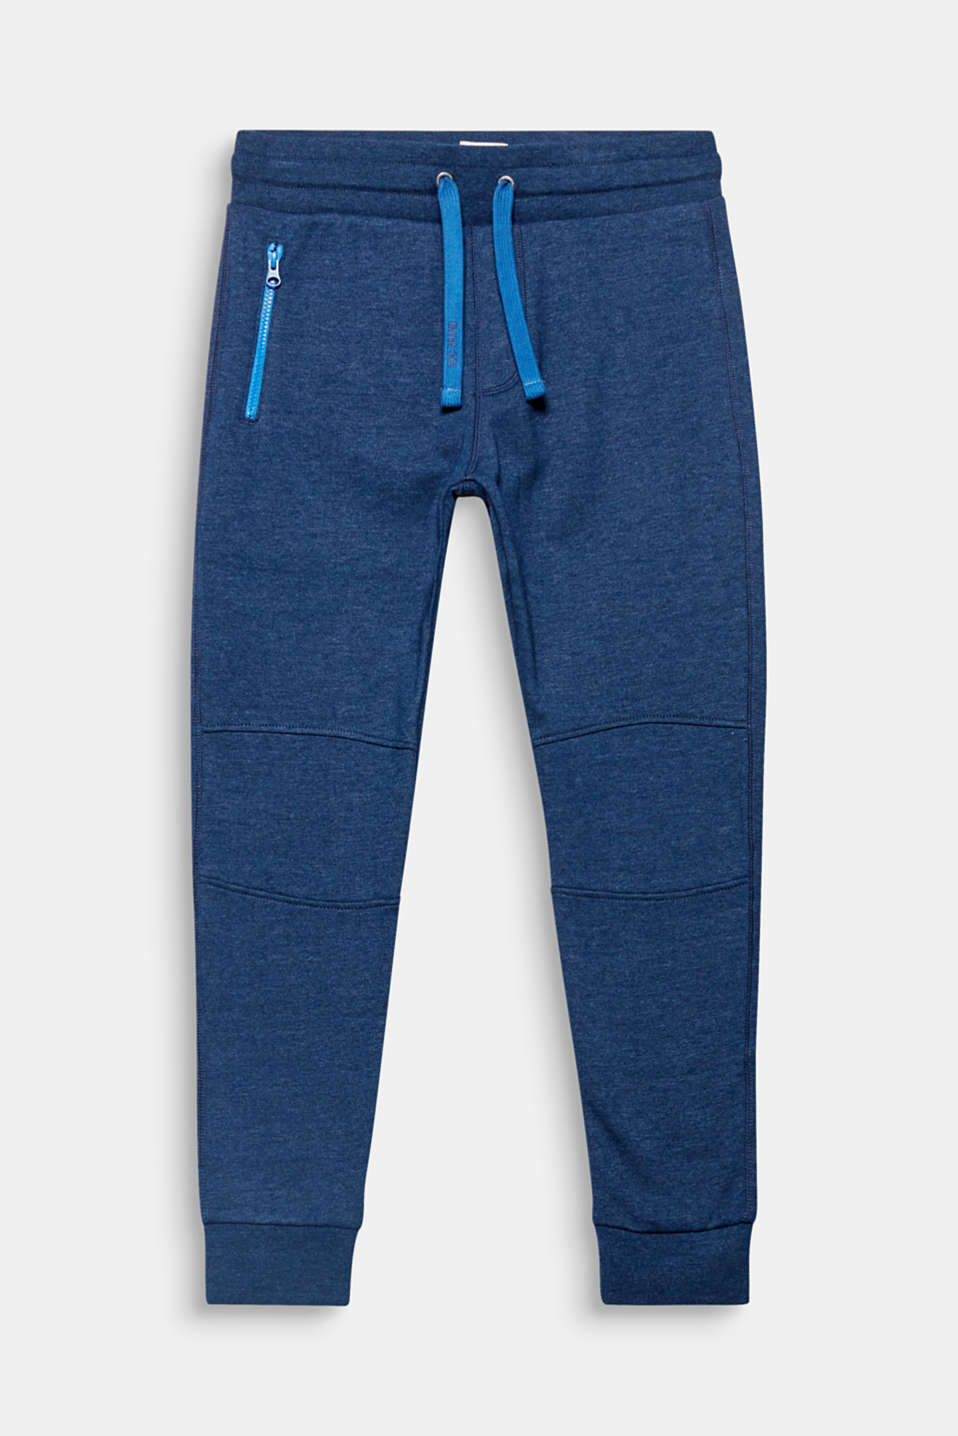 The jazzy drawstring ties and zip give these sweat tracksuit bottoms a modern look.